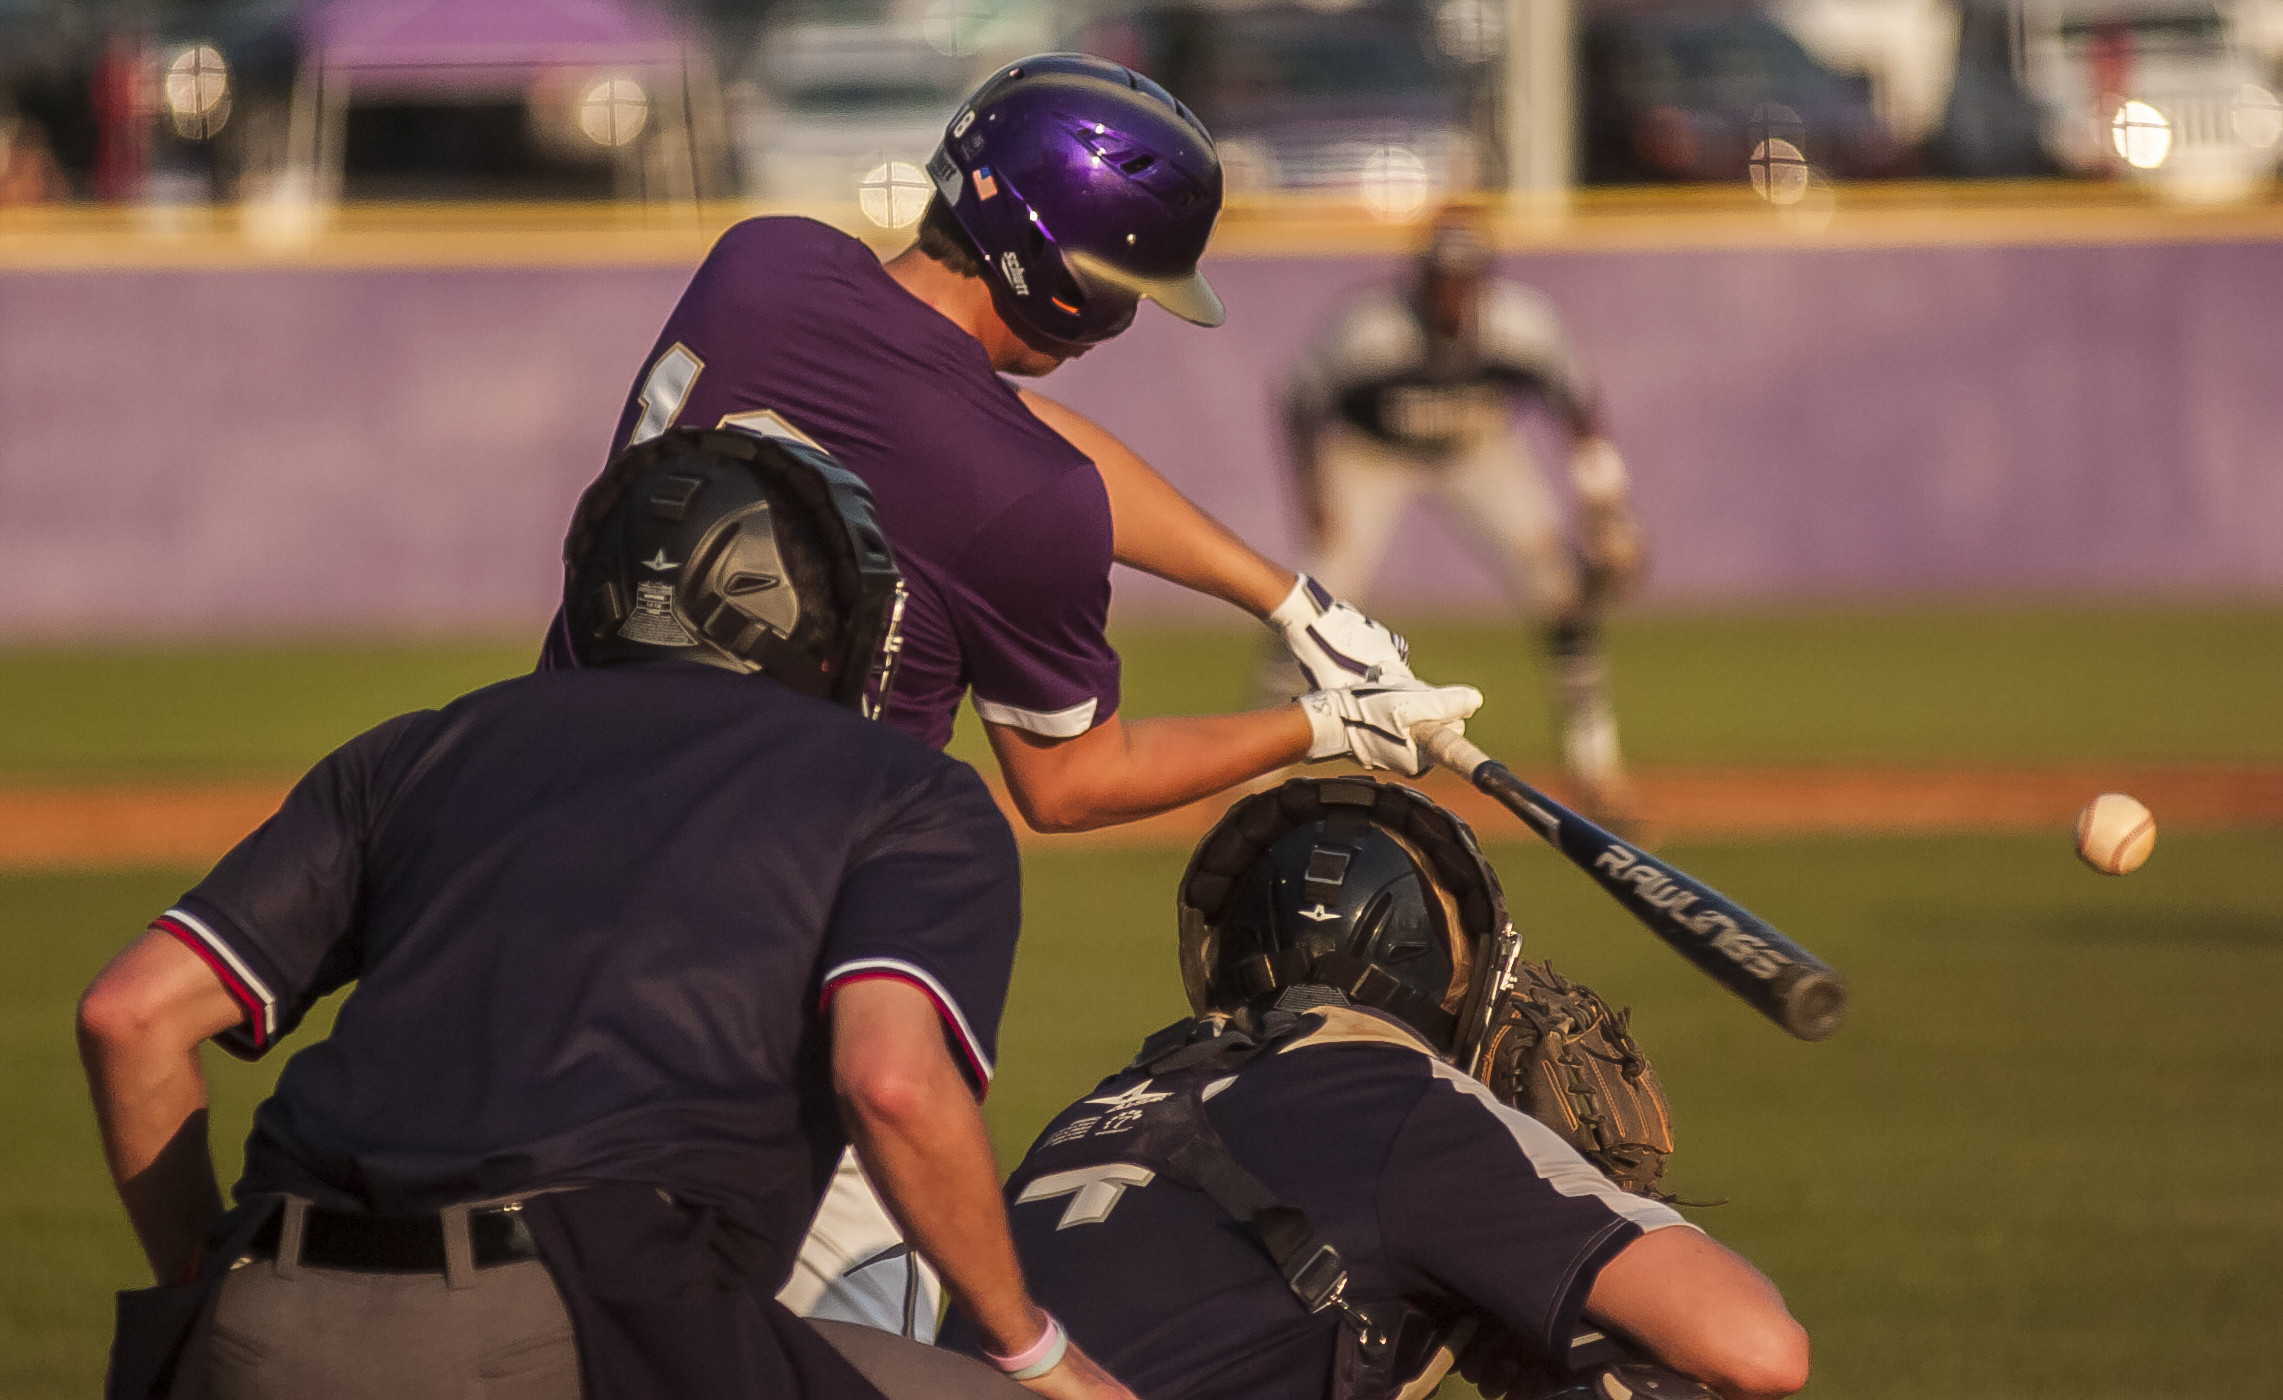 Cartersville junior Mason Barnett landed DTN Hitter of the Year after slashing .365/.461/.539 for the Canes. He added 11 doubles, 32 runs scored and 31 driven in.